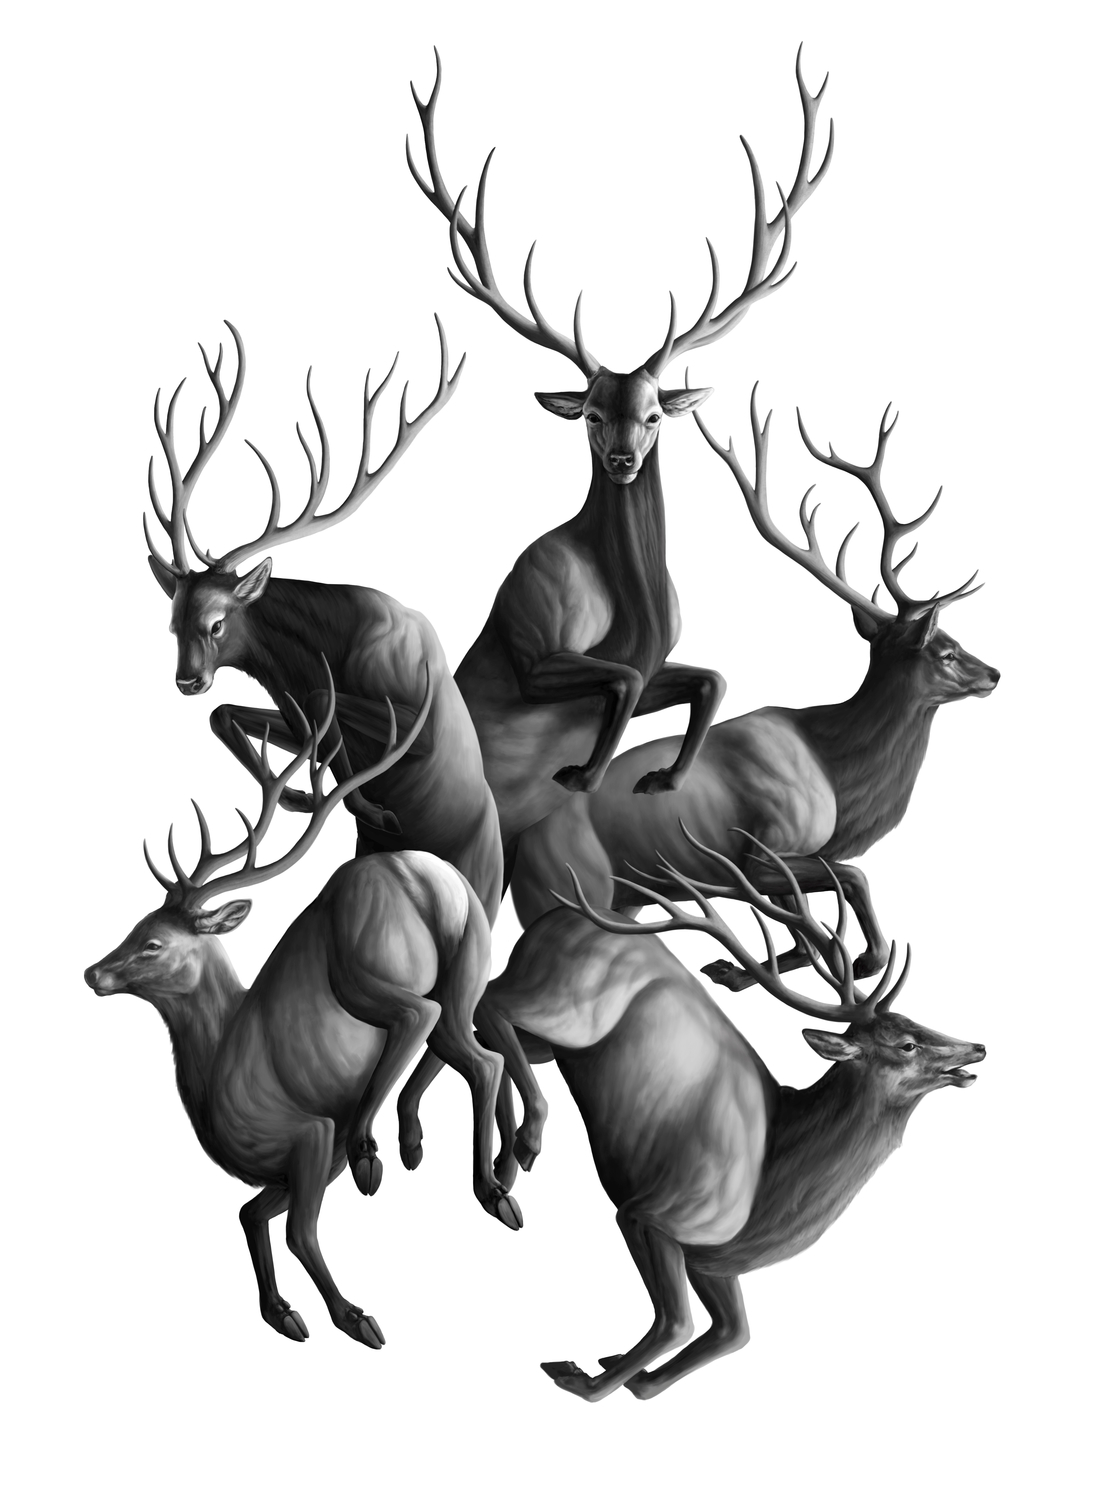 Stags Artwork by Shawn E Russell